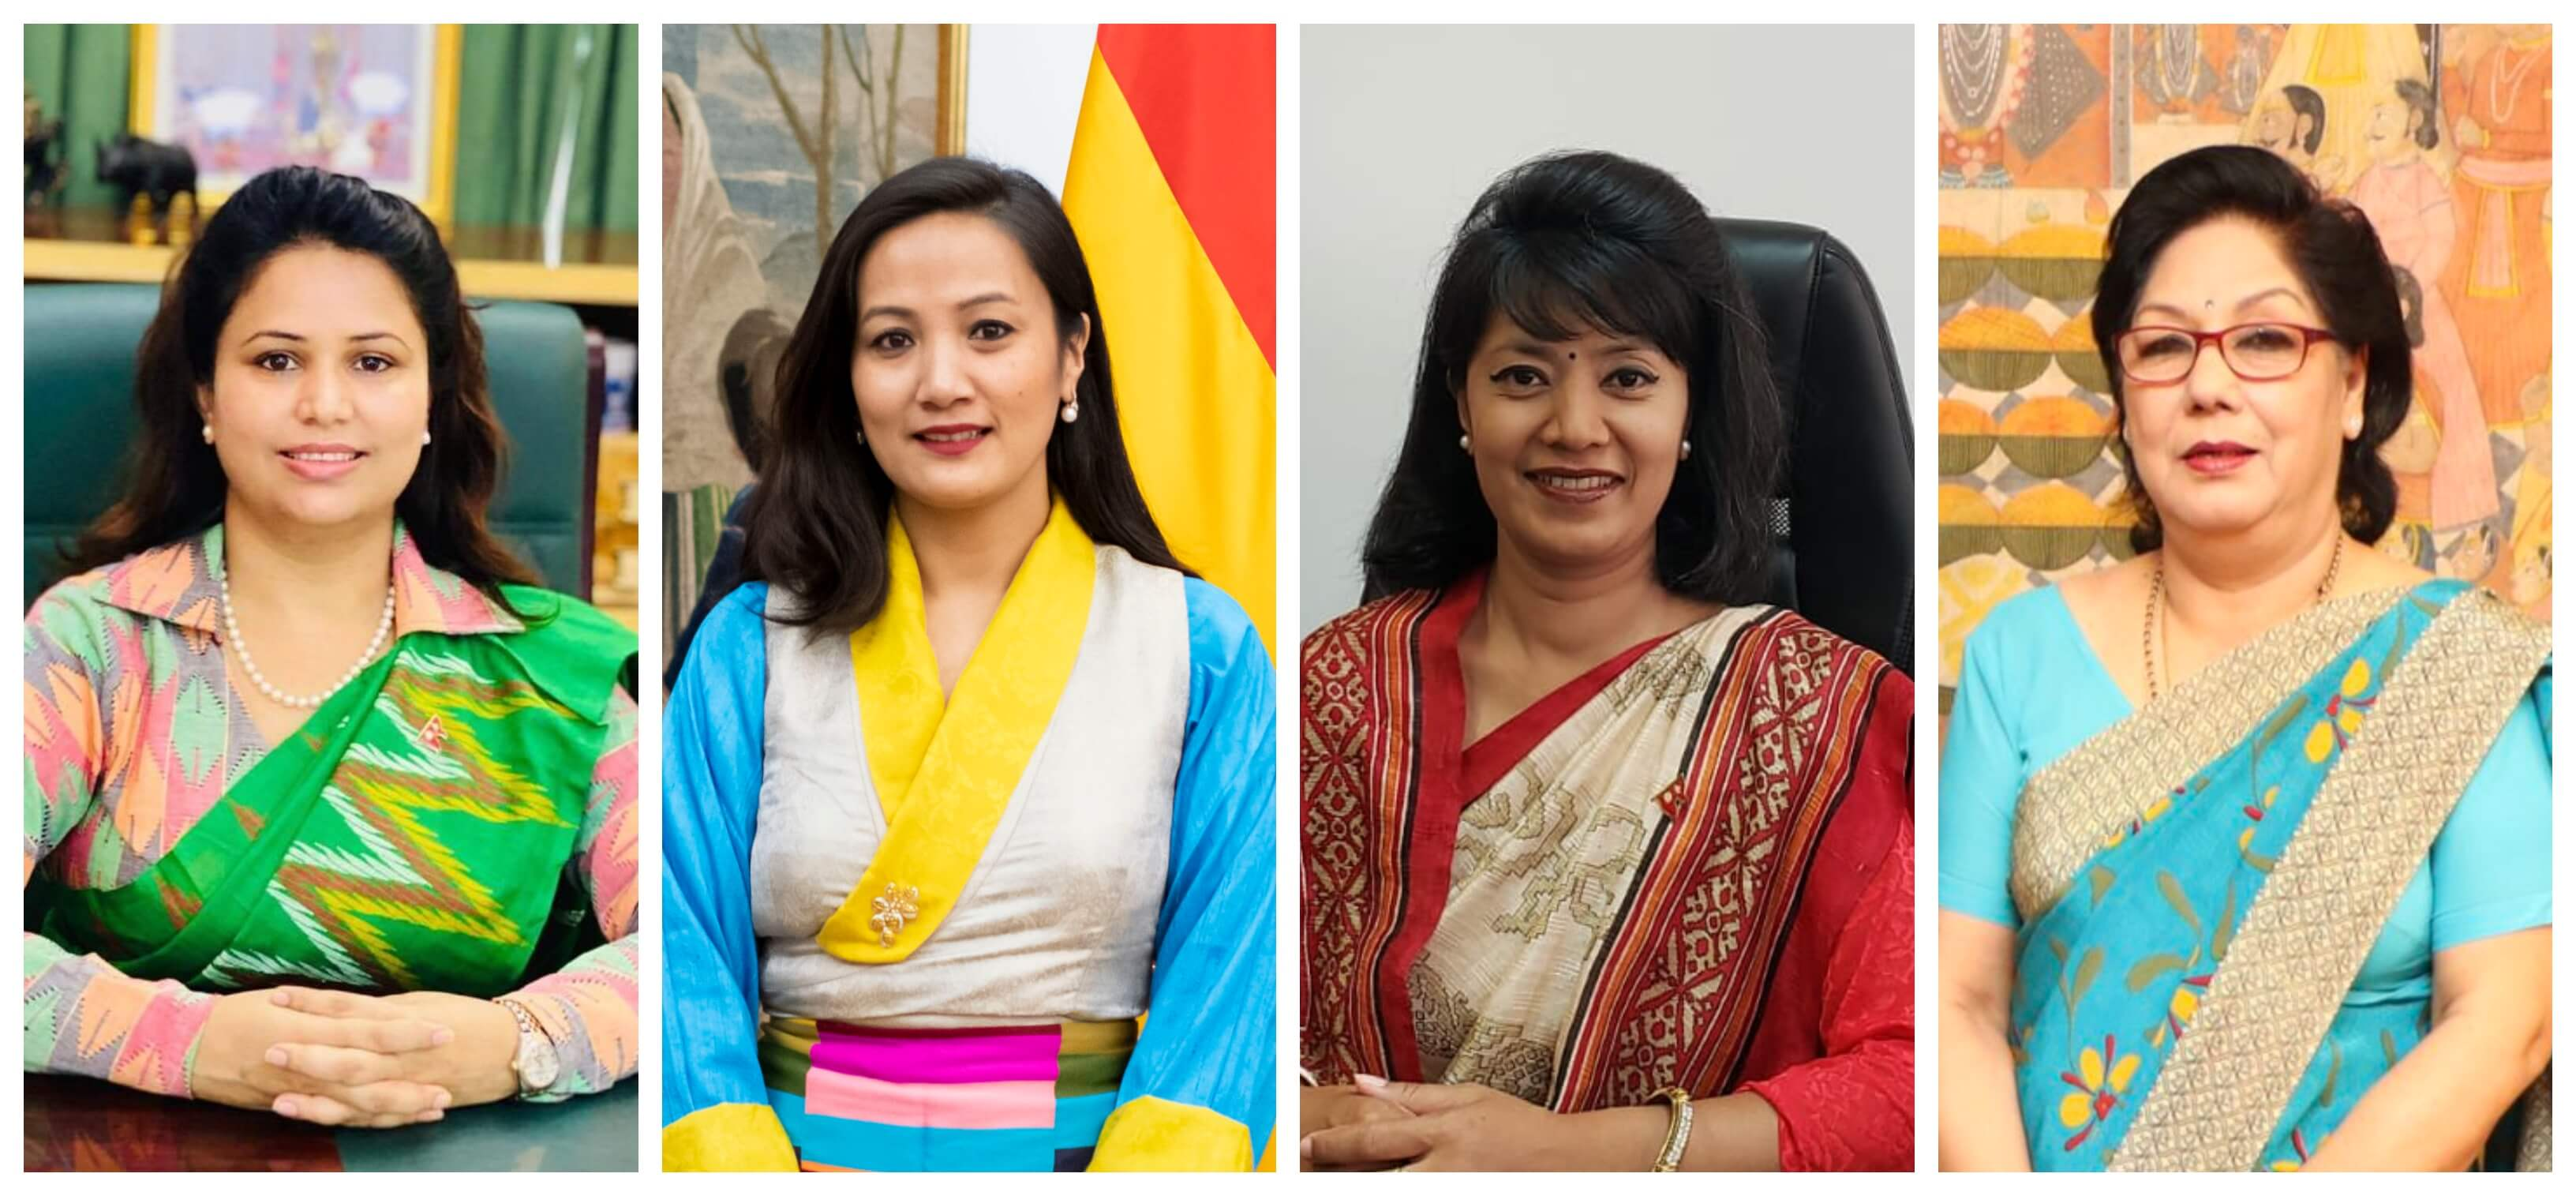 Nepal's women envoys make a mark